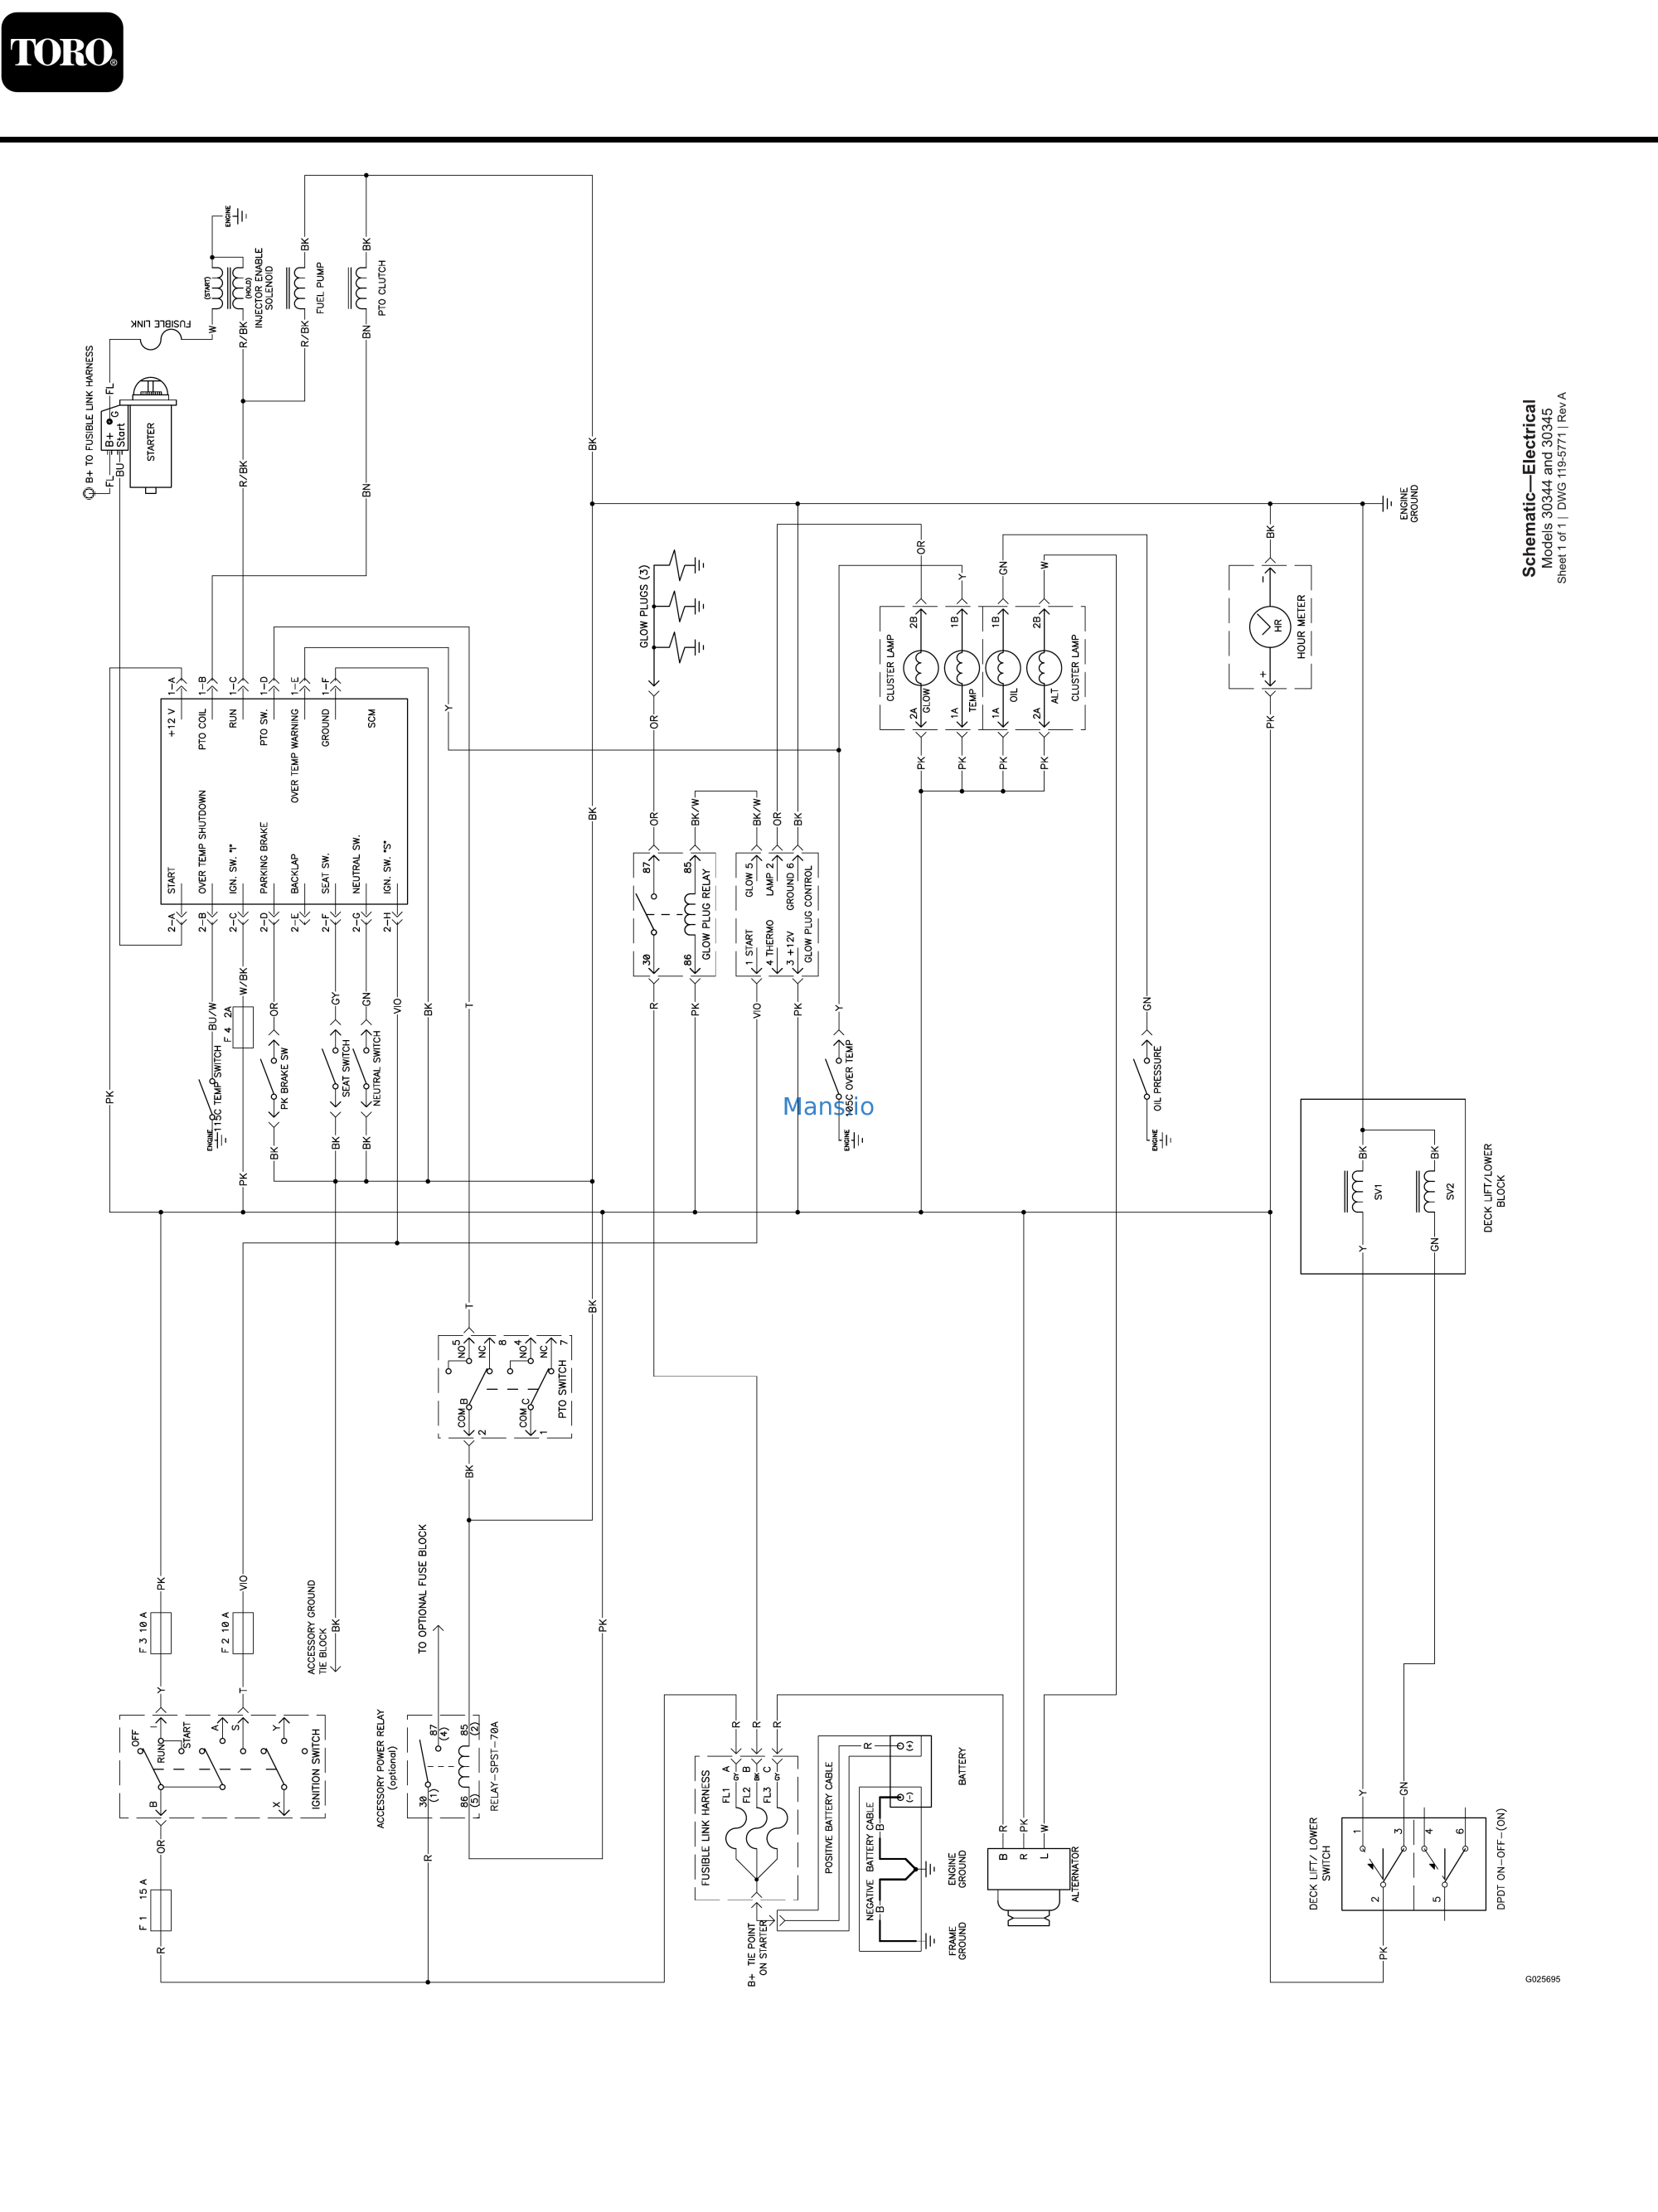 hight resolution of toro groundsmaster 3280 d 2wd 30344 schematic drawing electricaltoro groundsmaster 3280 d 2wd